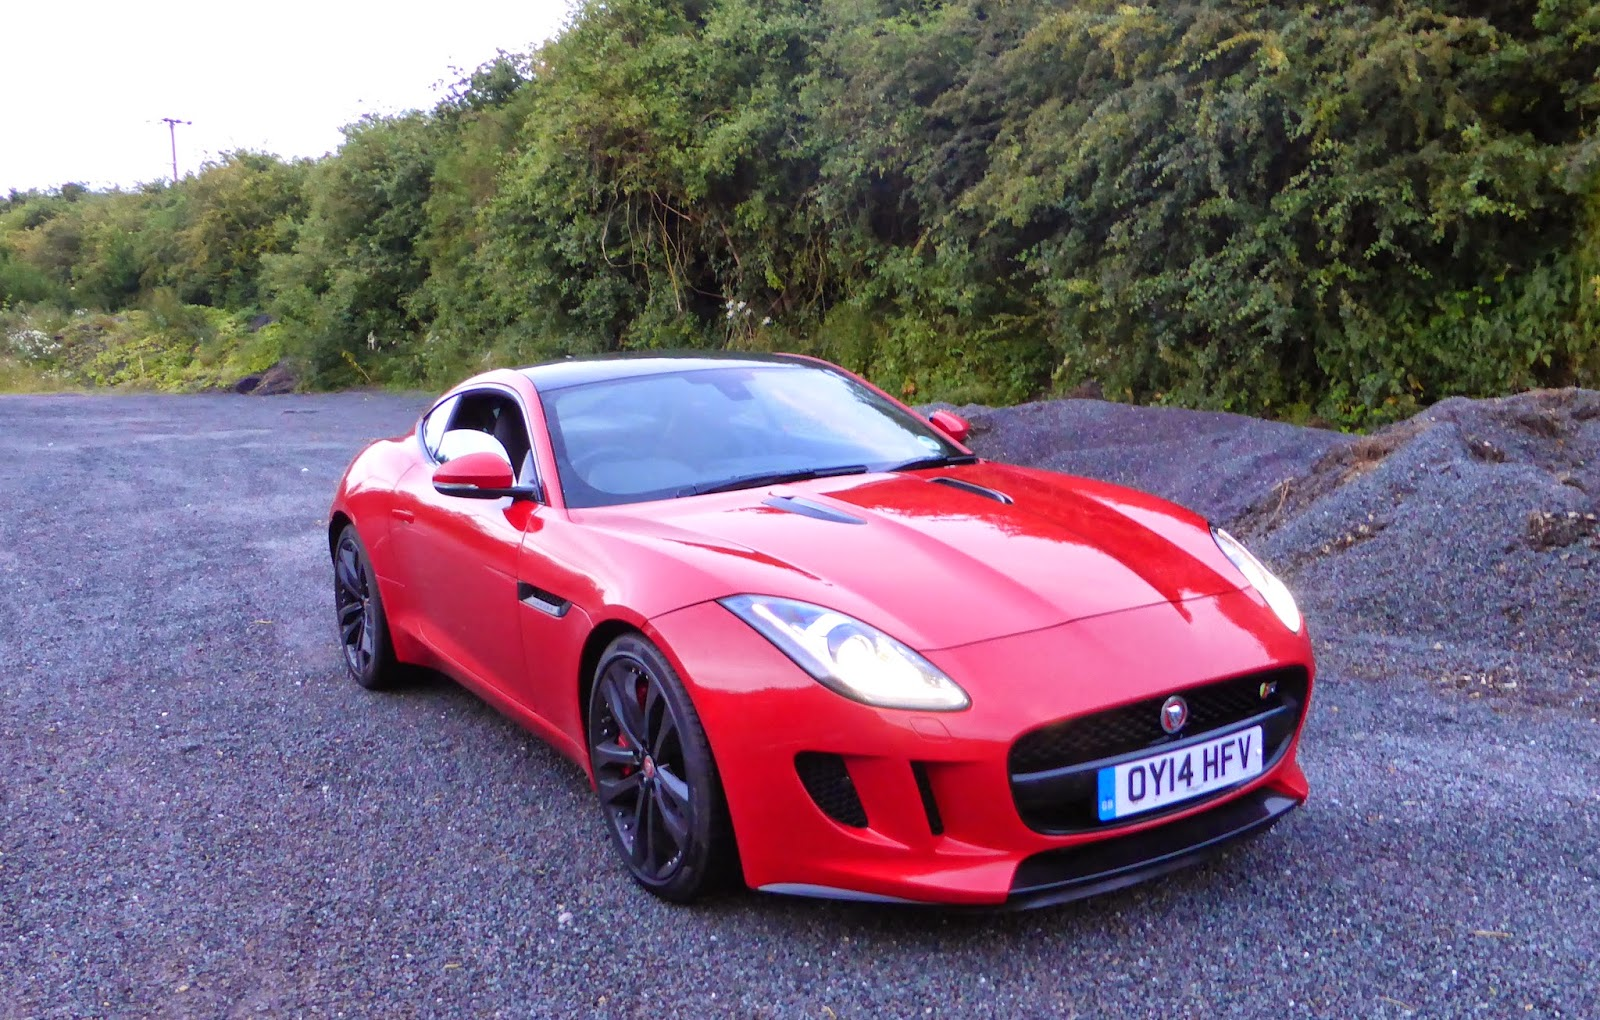 2014 jaguar f type coupe v6 s review the crittenden automotive library. Black Bedroom Furniture Sets. Home Design Ideas